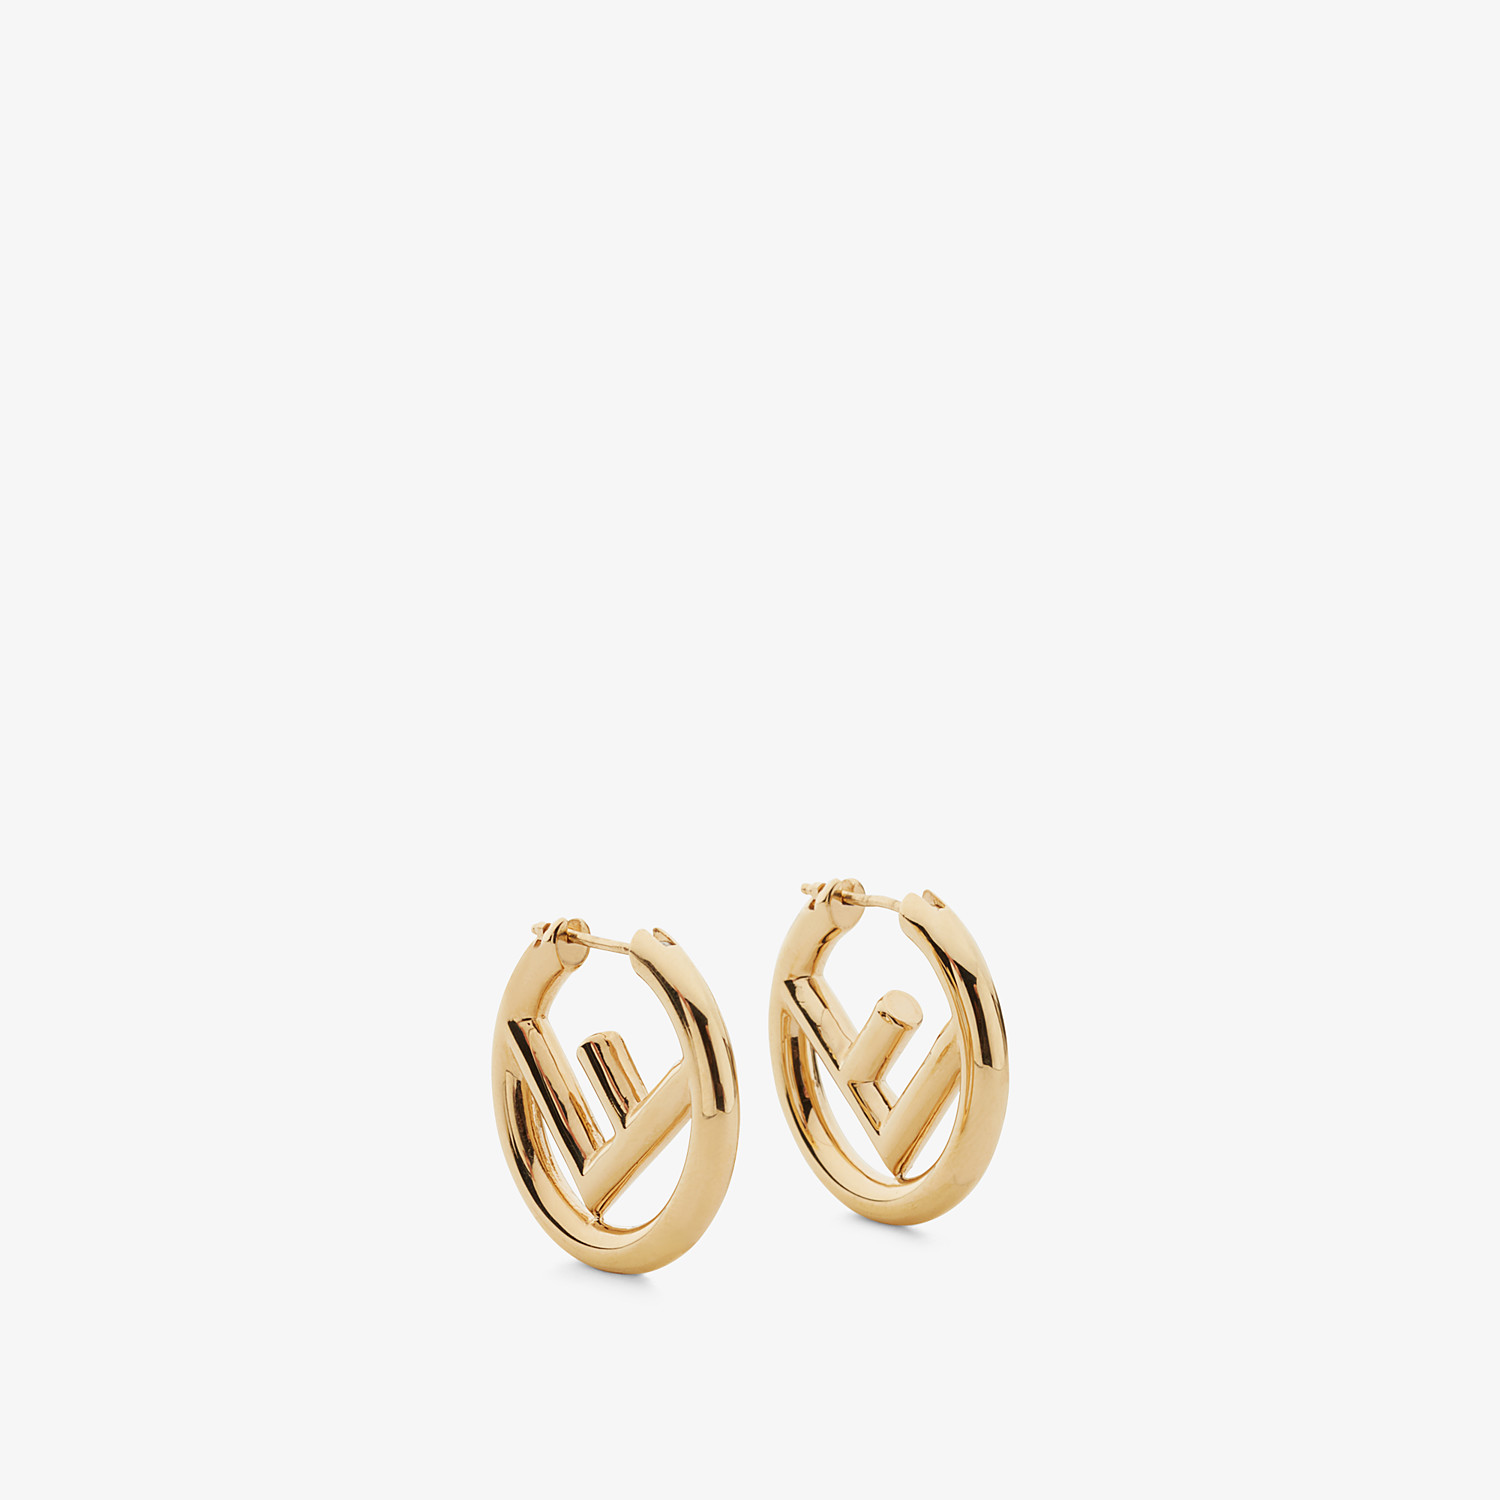 FENDI F IS FENDI EARRINGS - Gold earrings - view 1 detail